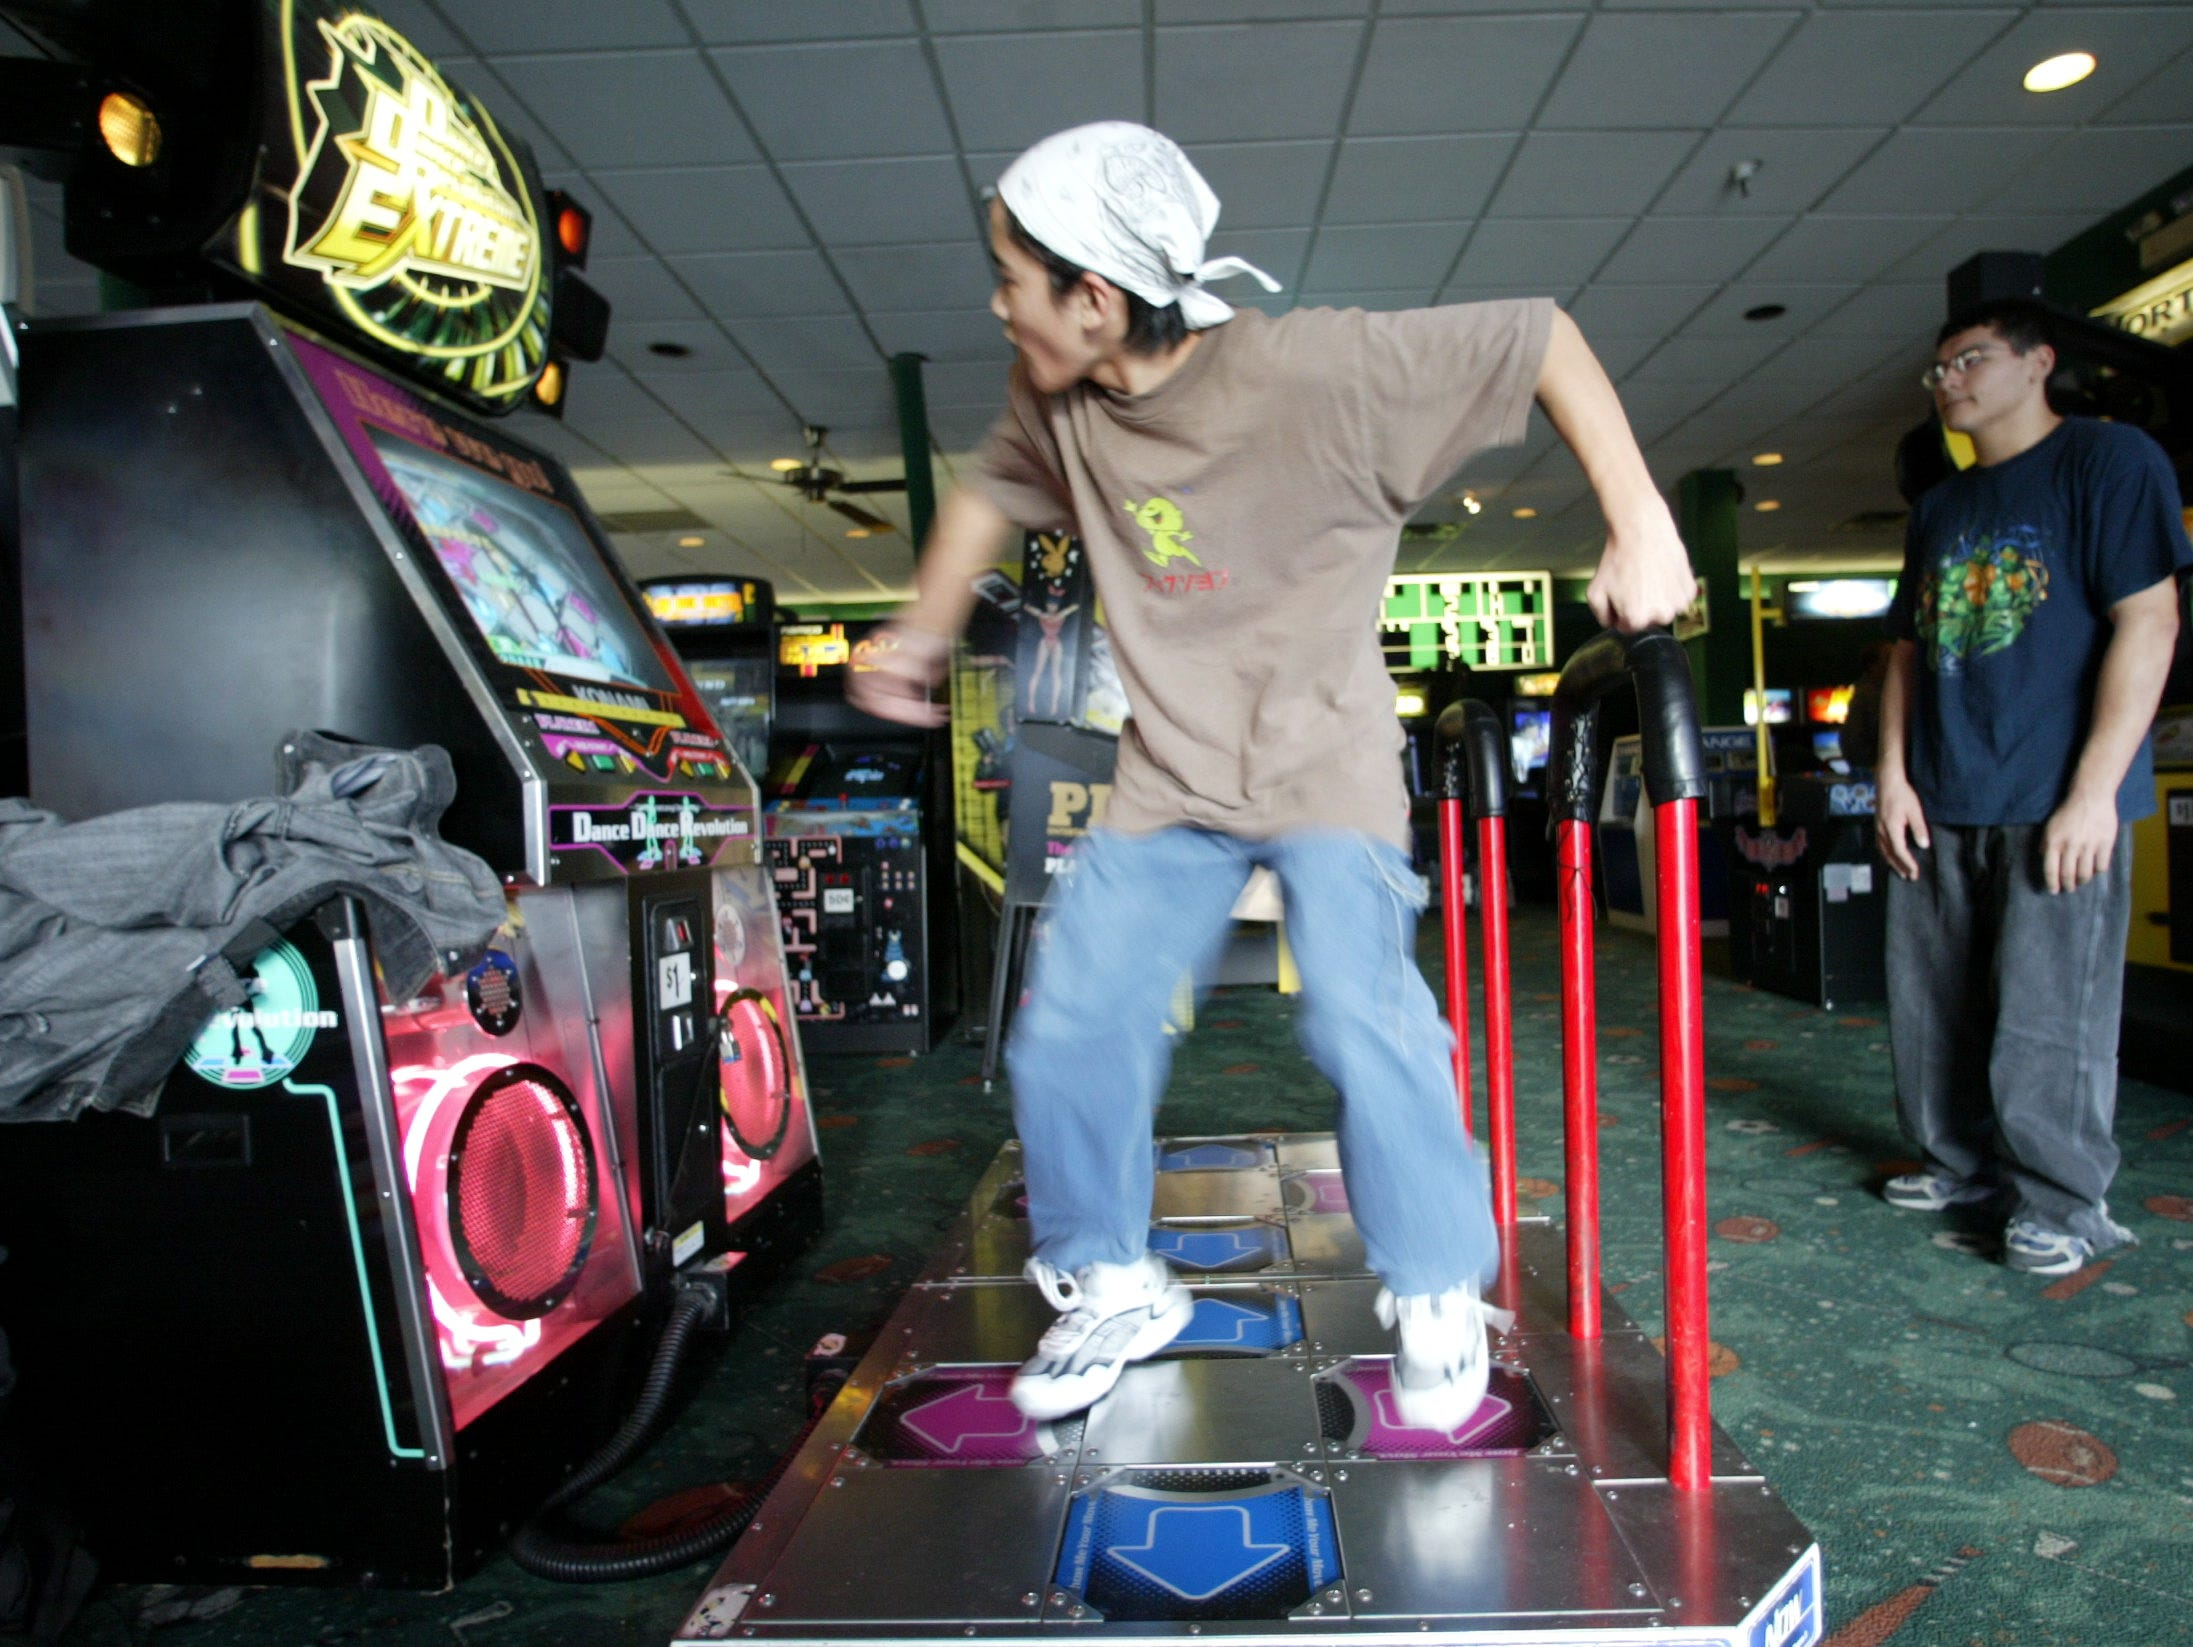 Fun 'N' Games at Willowbrook Mall. Jason Portugal of Bloomfield dances on the platform of the Dance Evolution game on December 18, 2003.